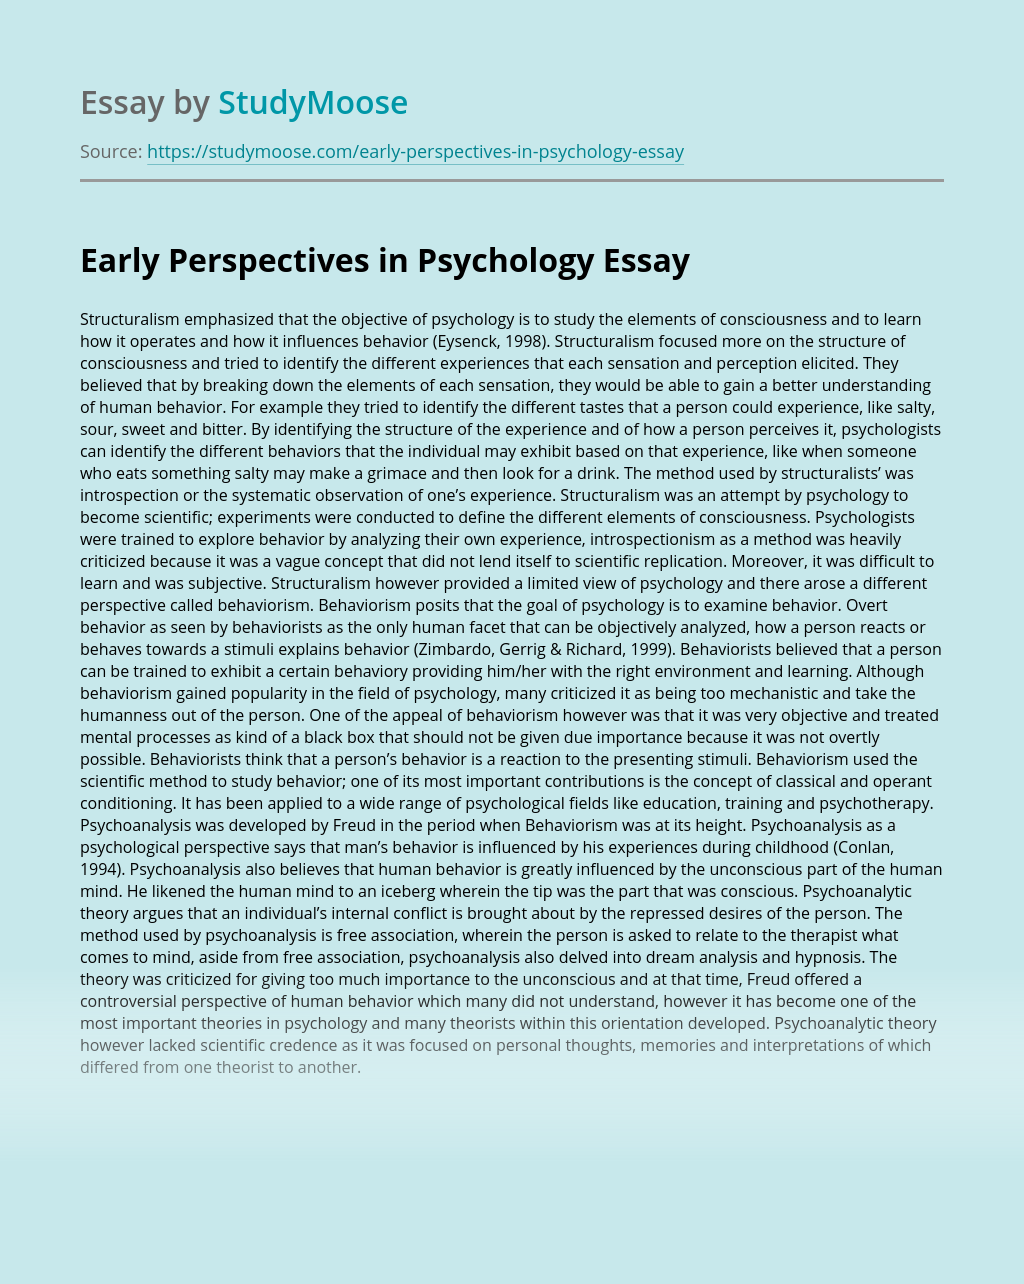 Early Perspectives in Psychology